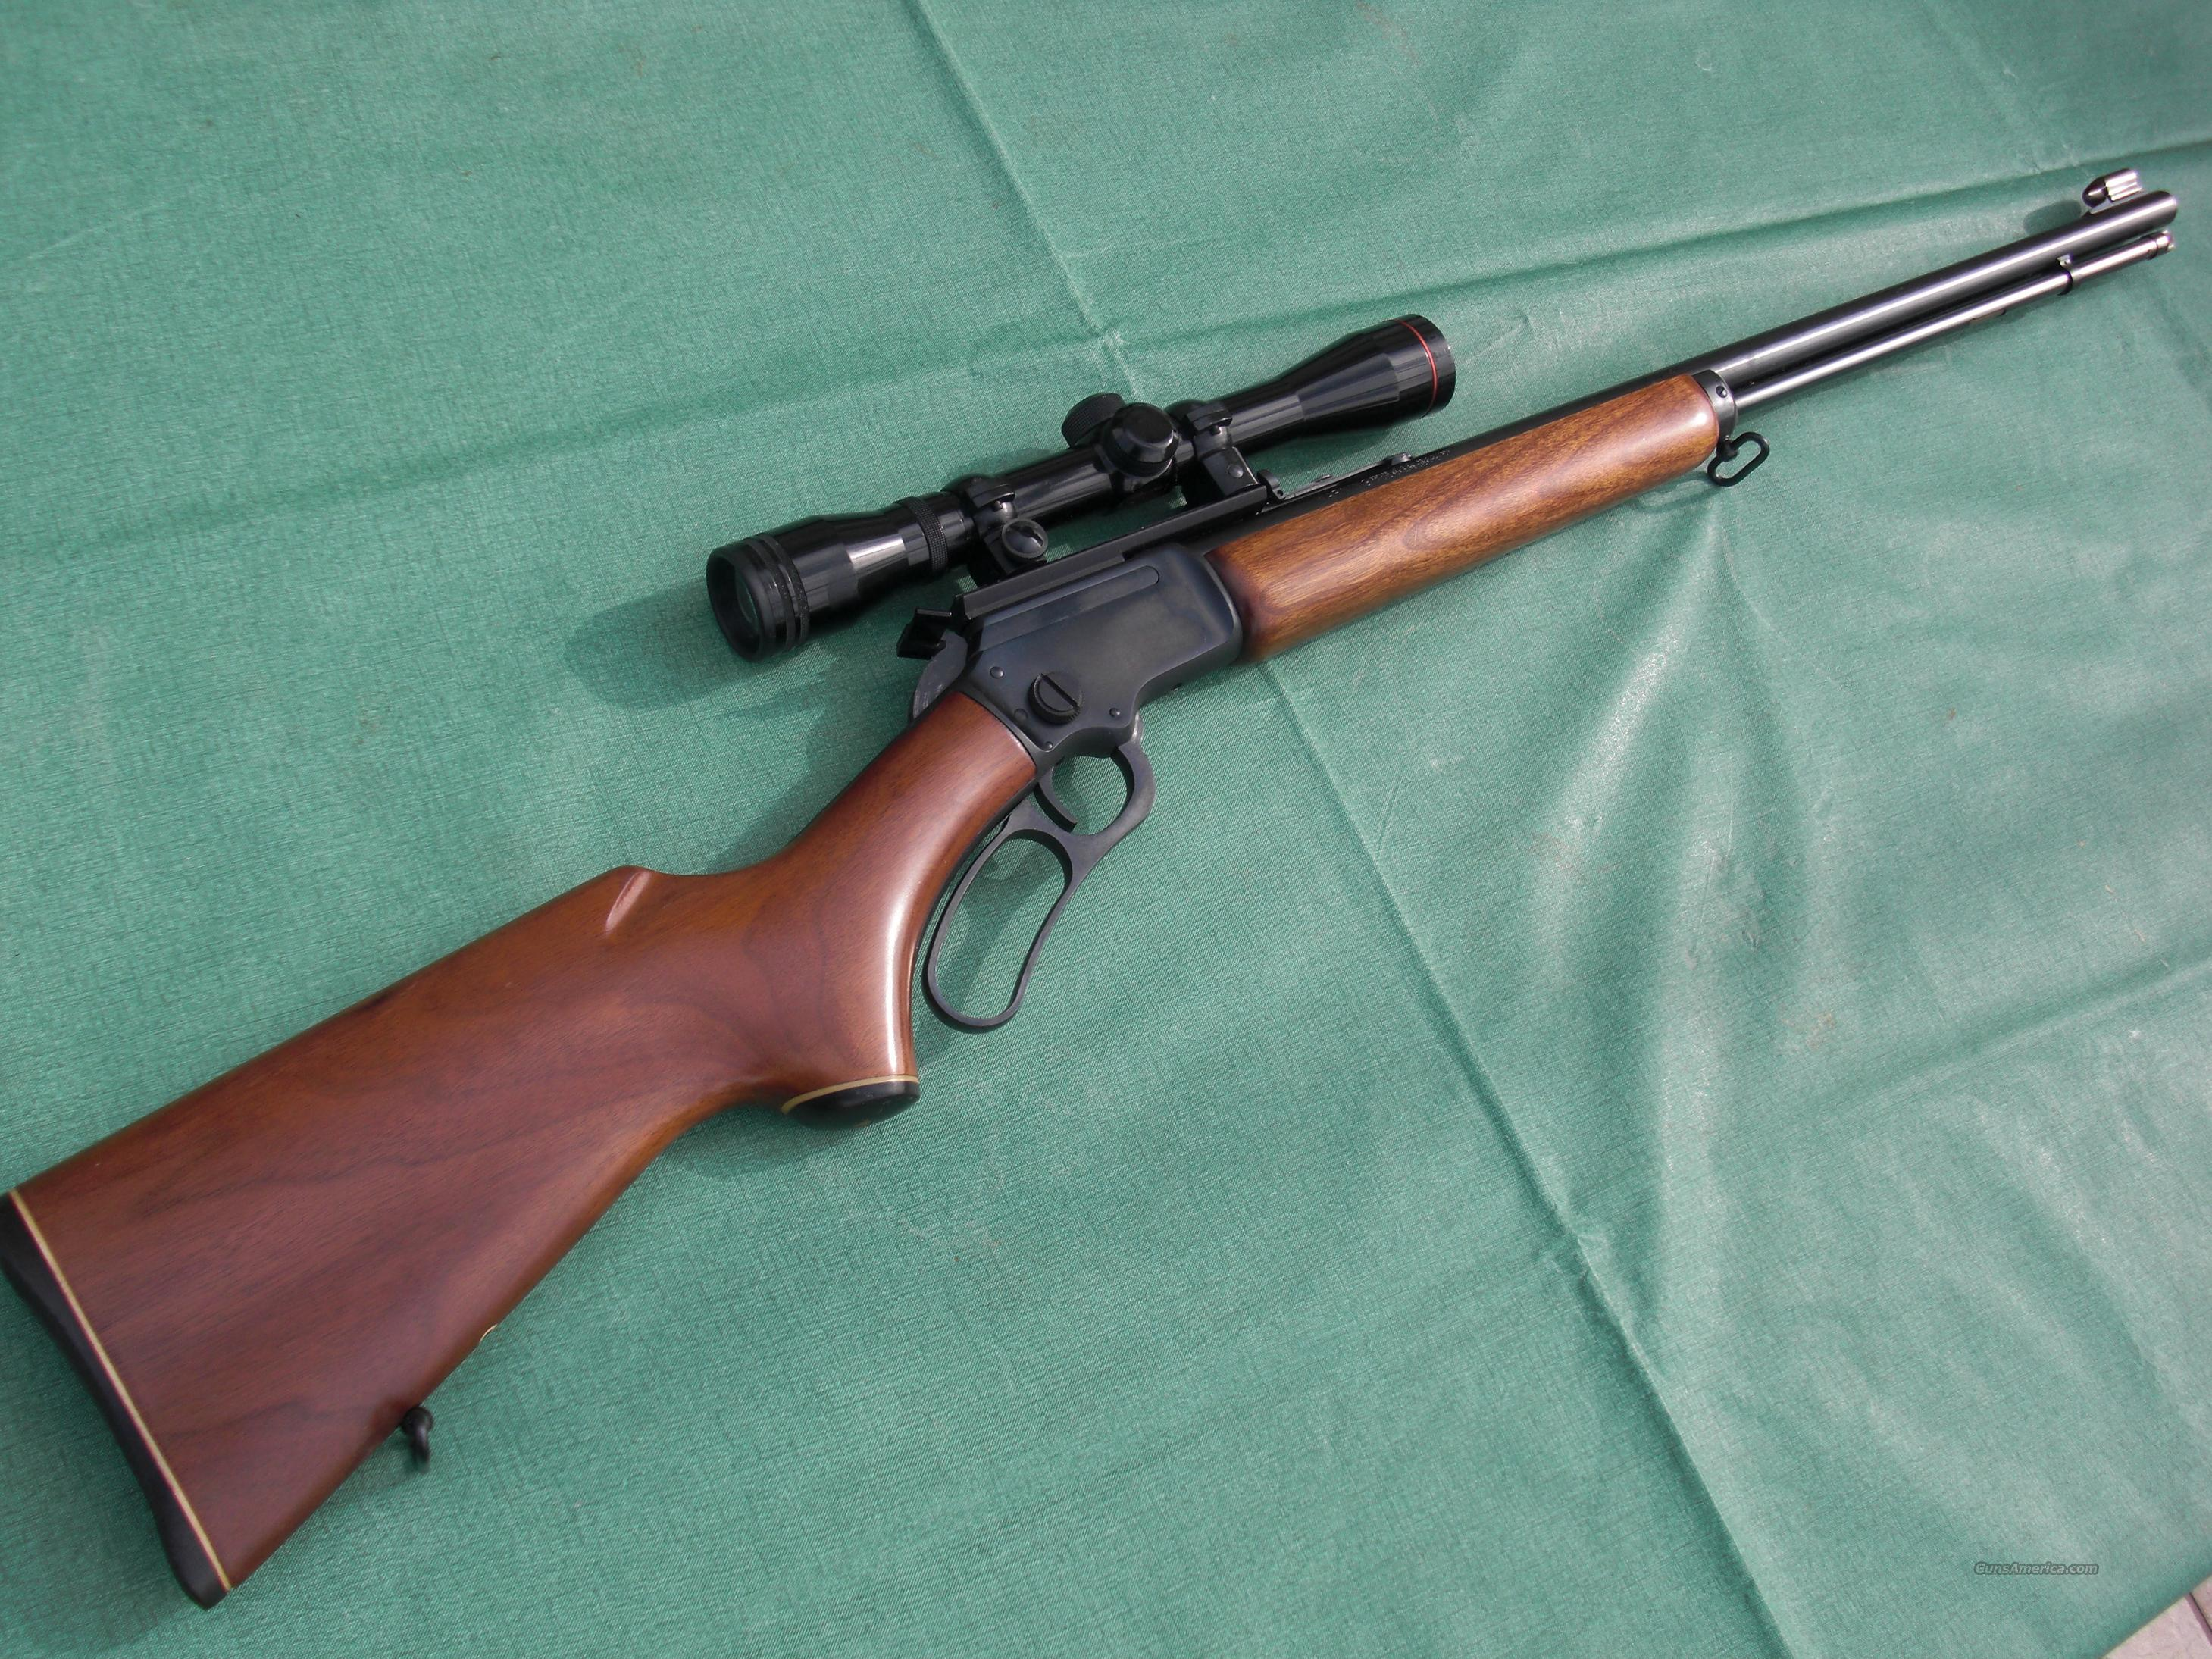 Marlin 39A in .22 with Scope  Guns > Rifles > Marlin Rifles > Modern > Lever Action